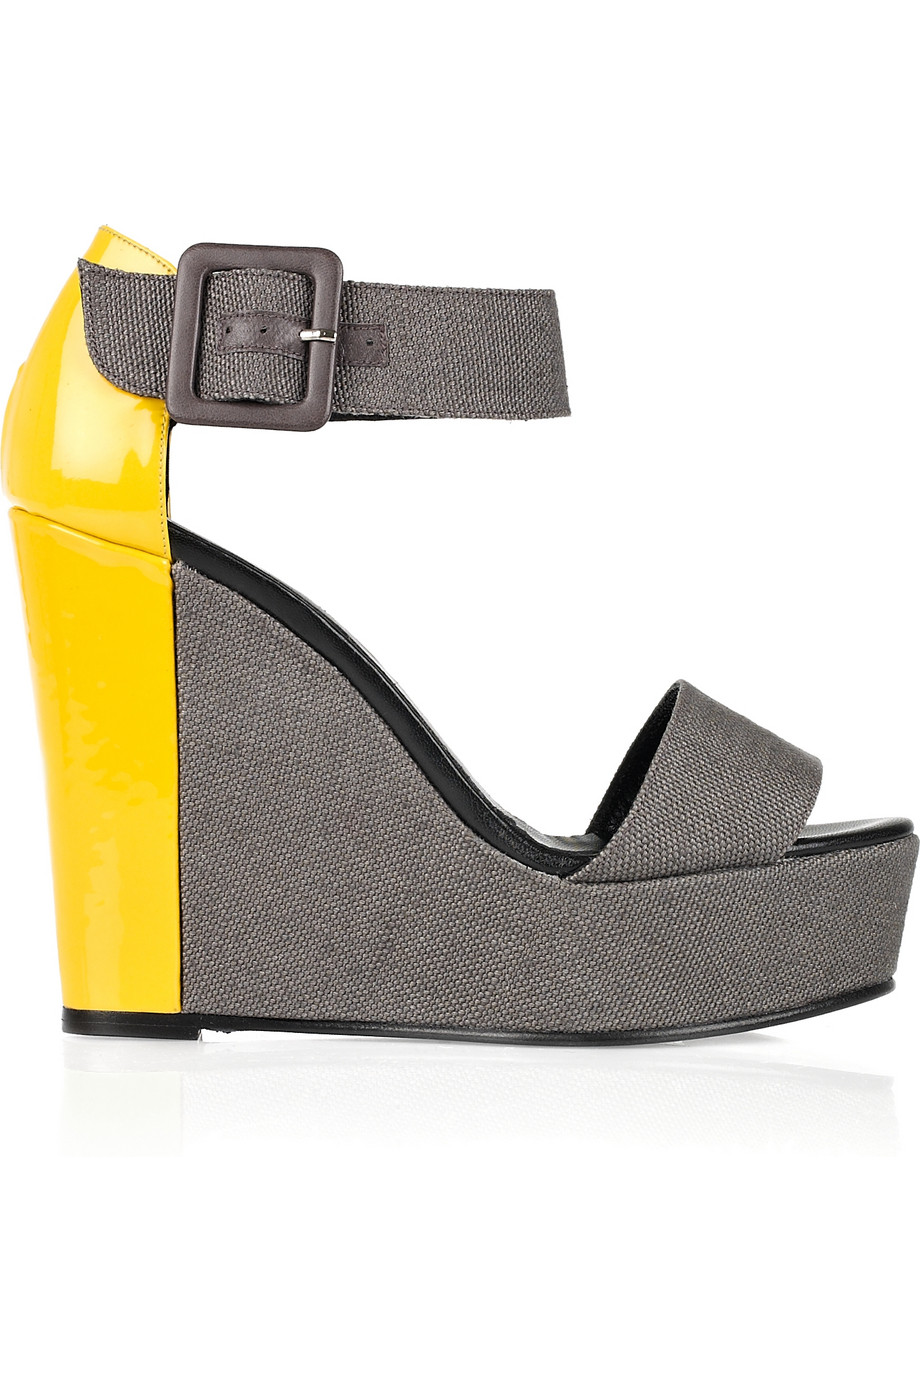 7ecbf7d3d045 Lyst - Pierre Hardy Color-block Canvas and Patent-leather Wedge ...